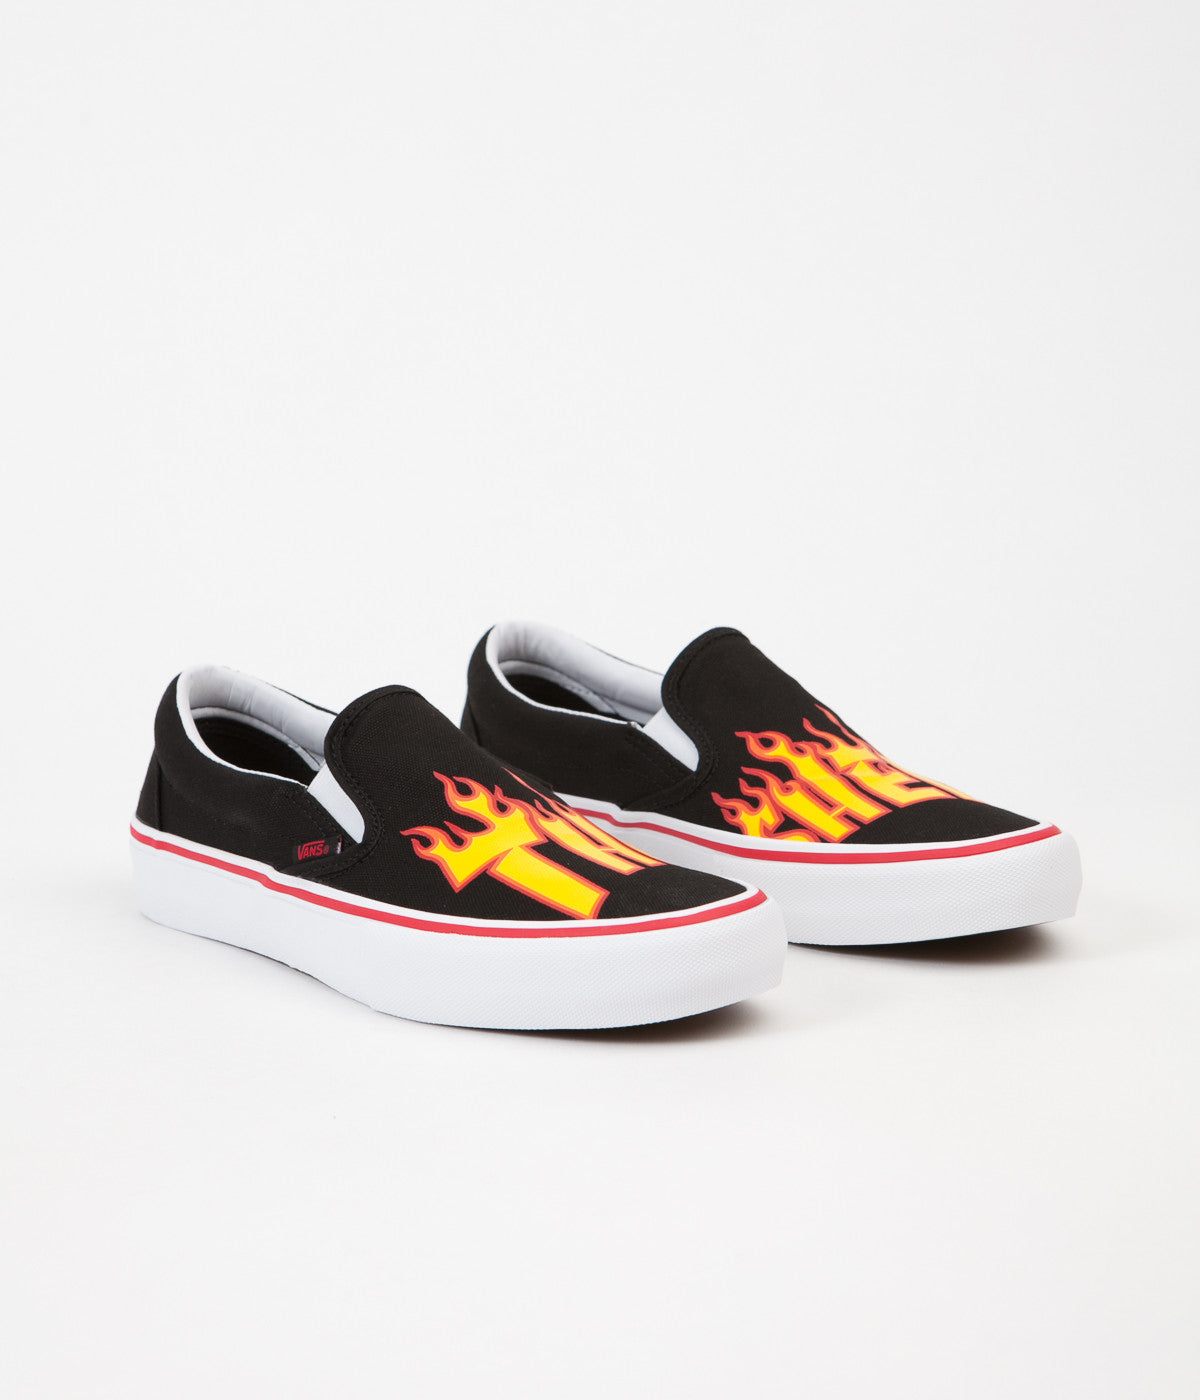 6d74187013b ... Vans x Thrasher Slip On Pro Shoes - Black ...